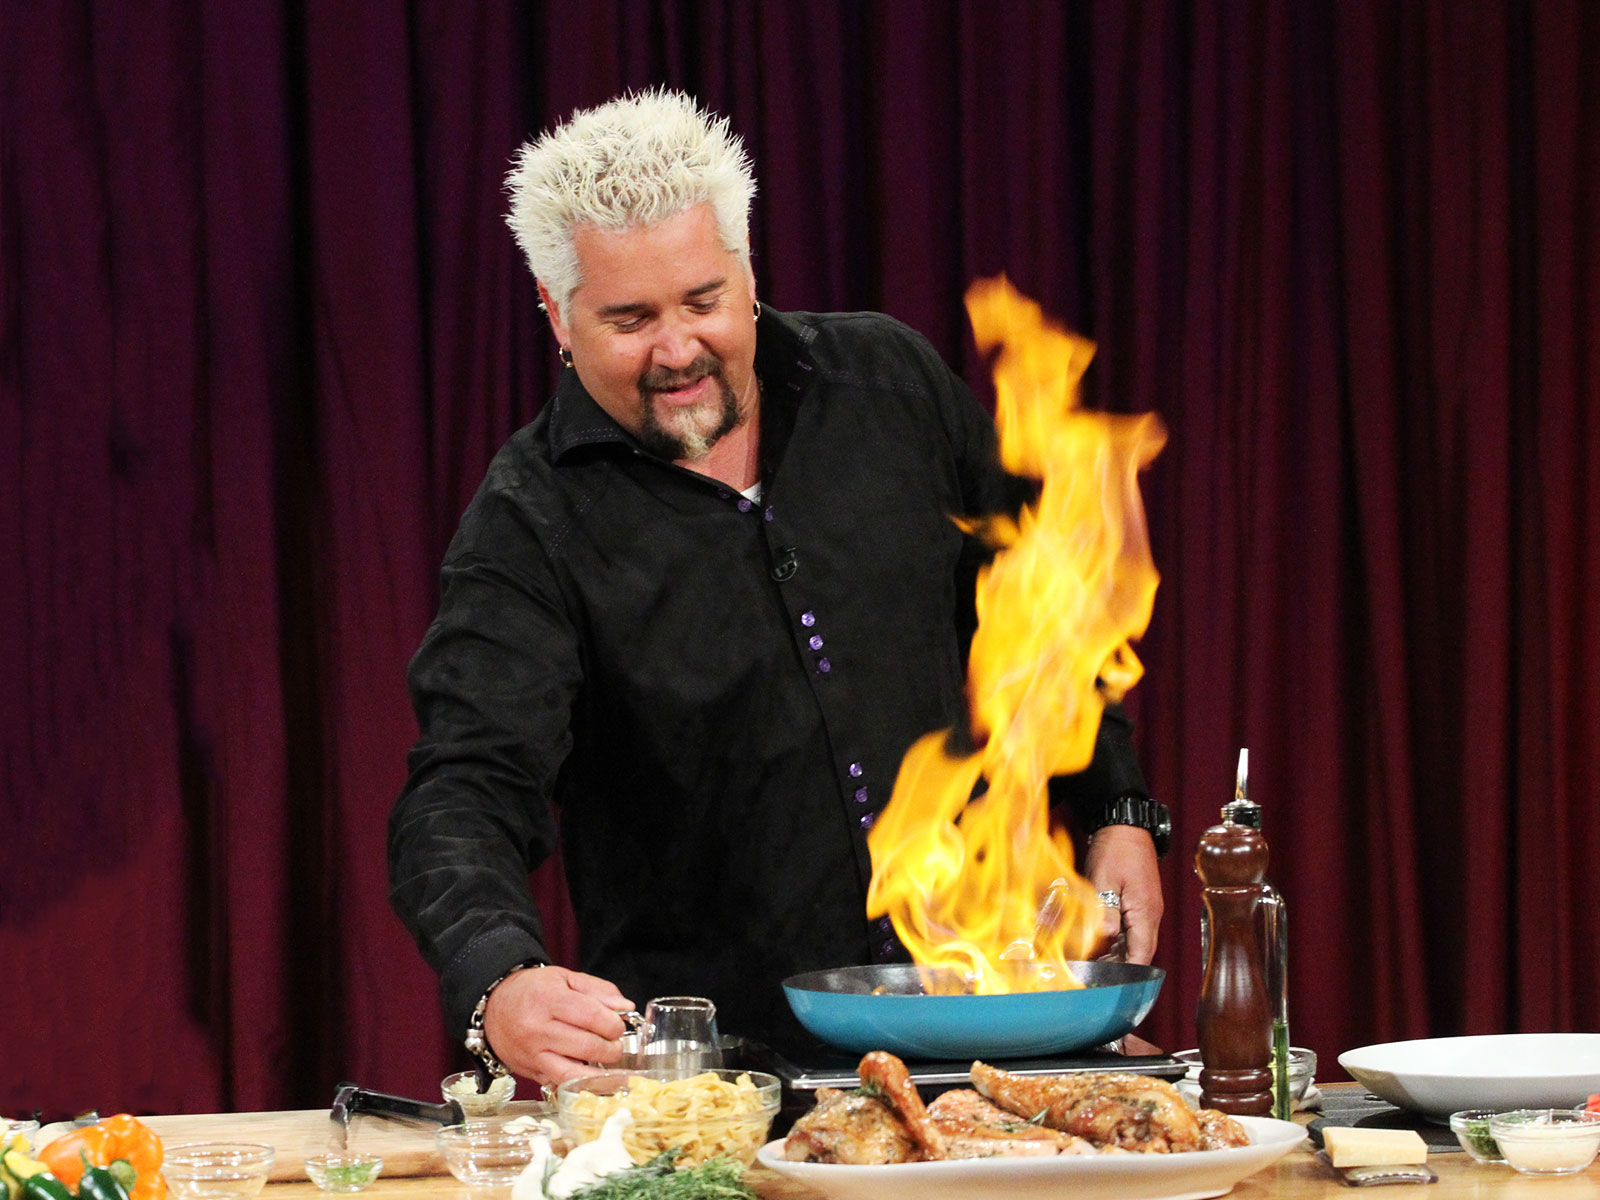 guy fieri flame shirt